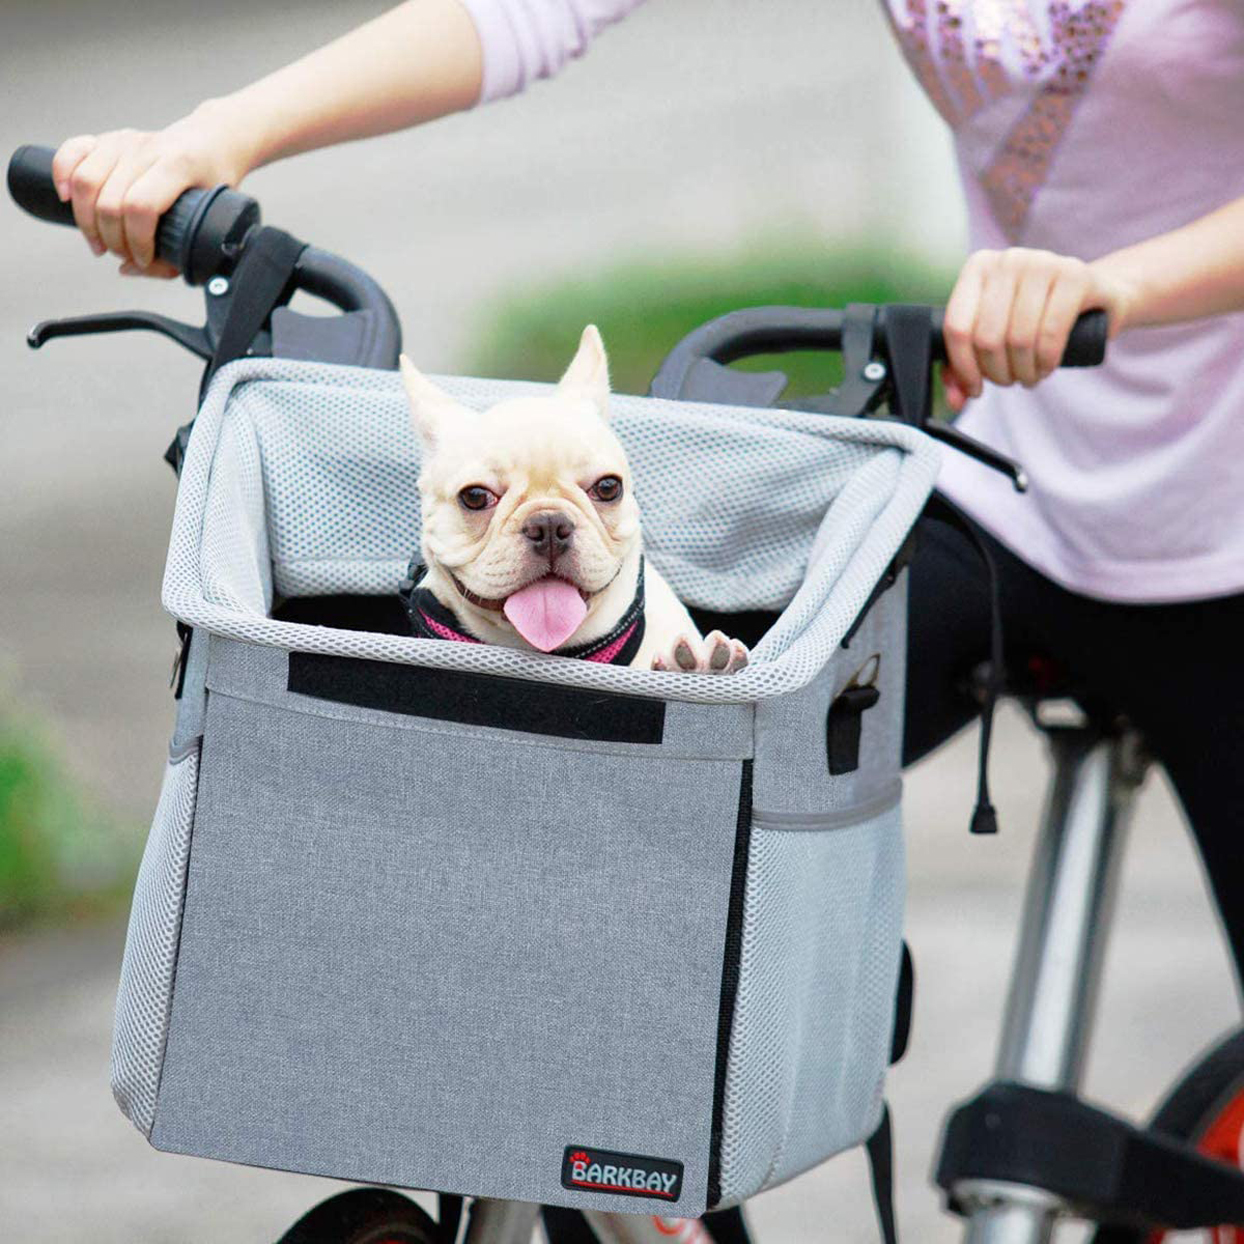 barkbay-pet-carrier-bicycle-basket